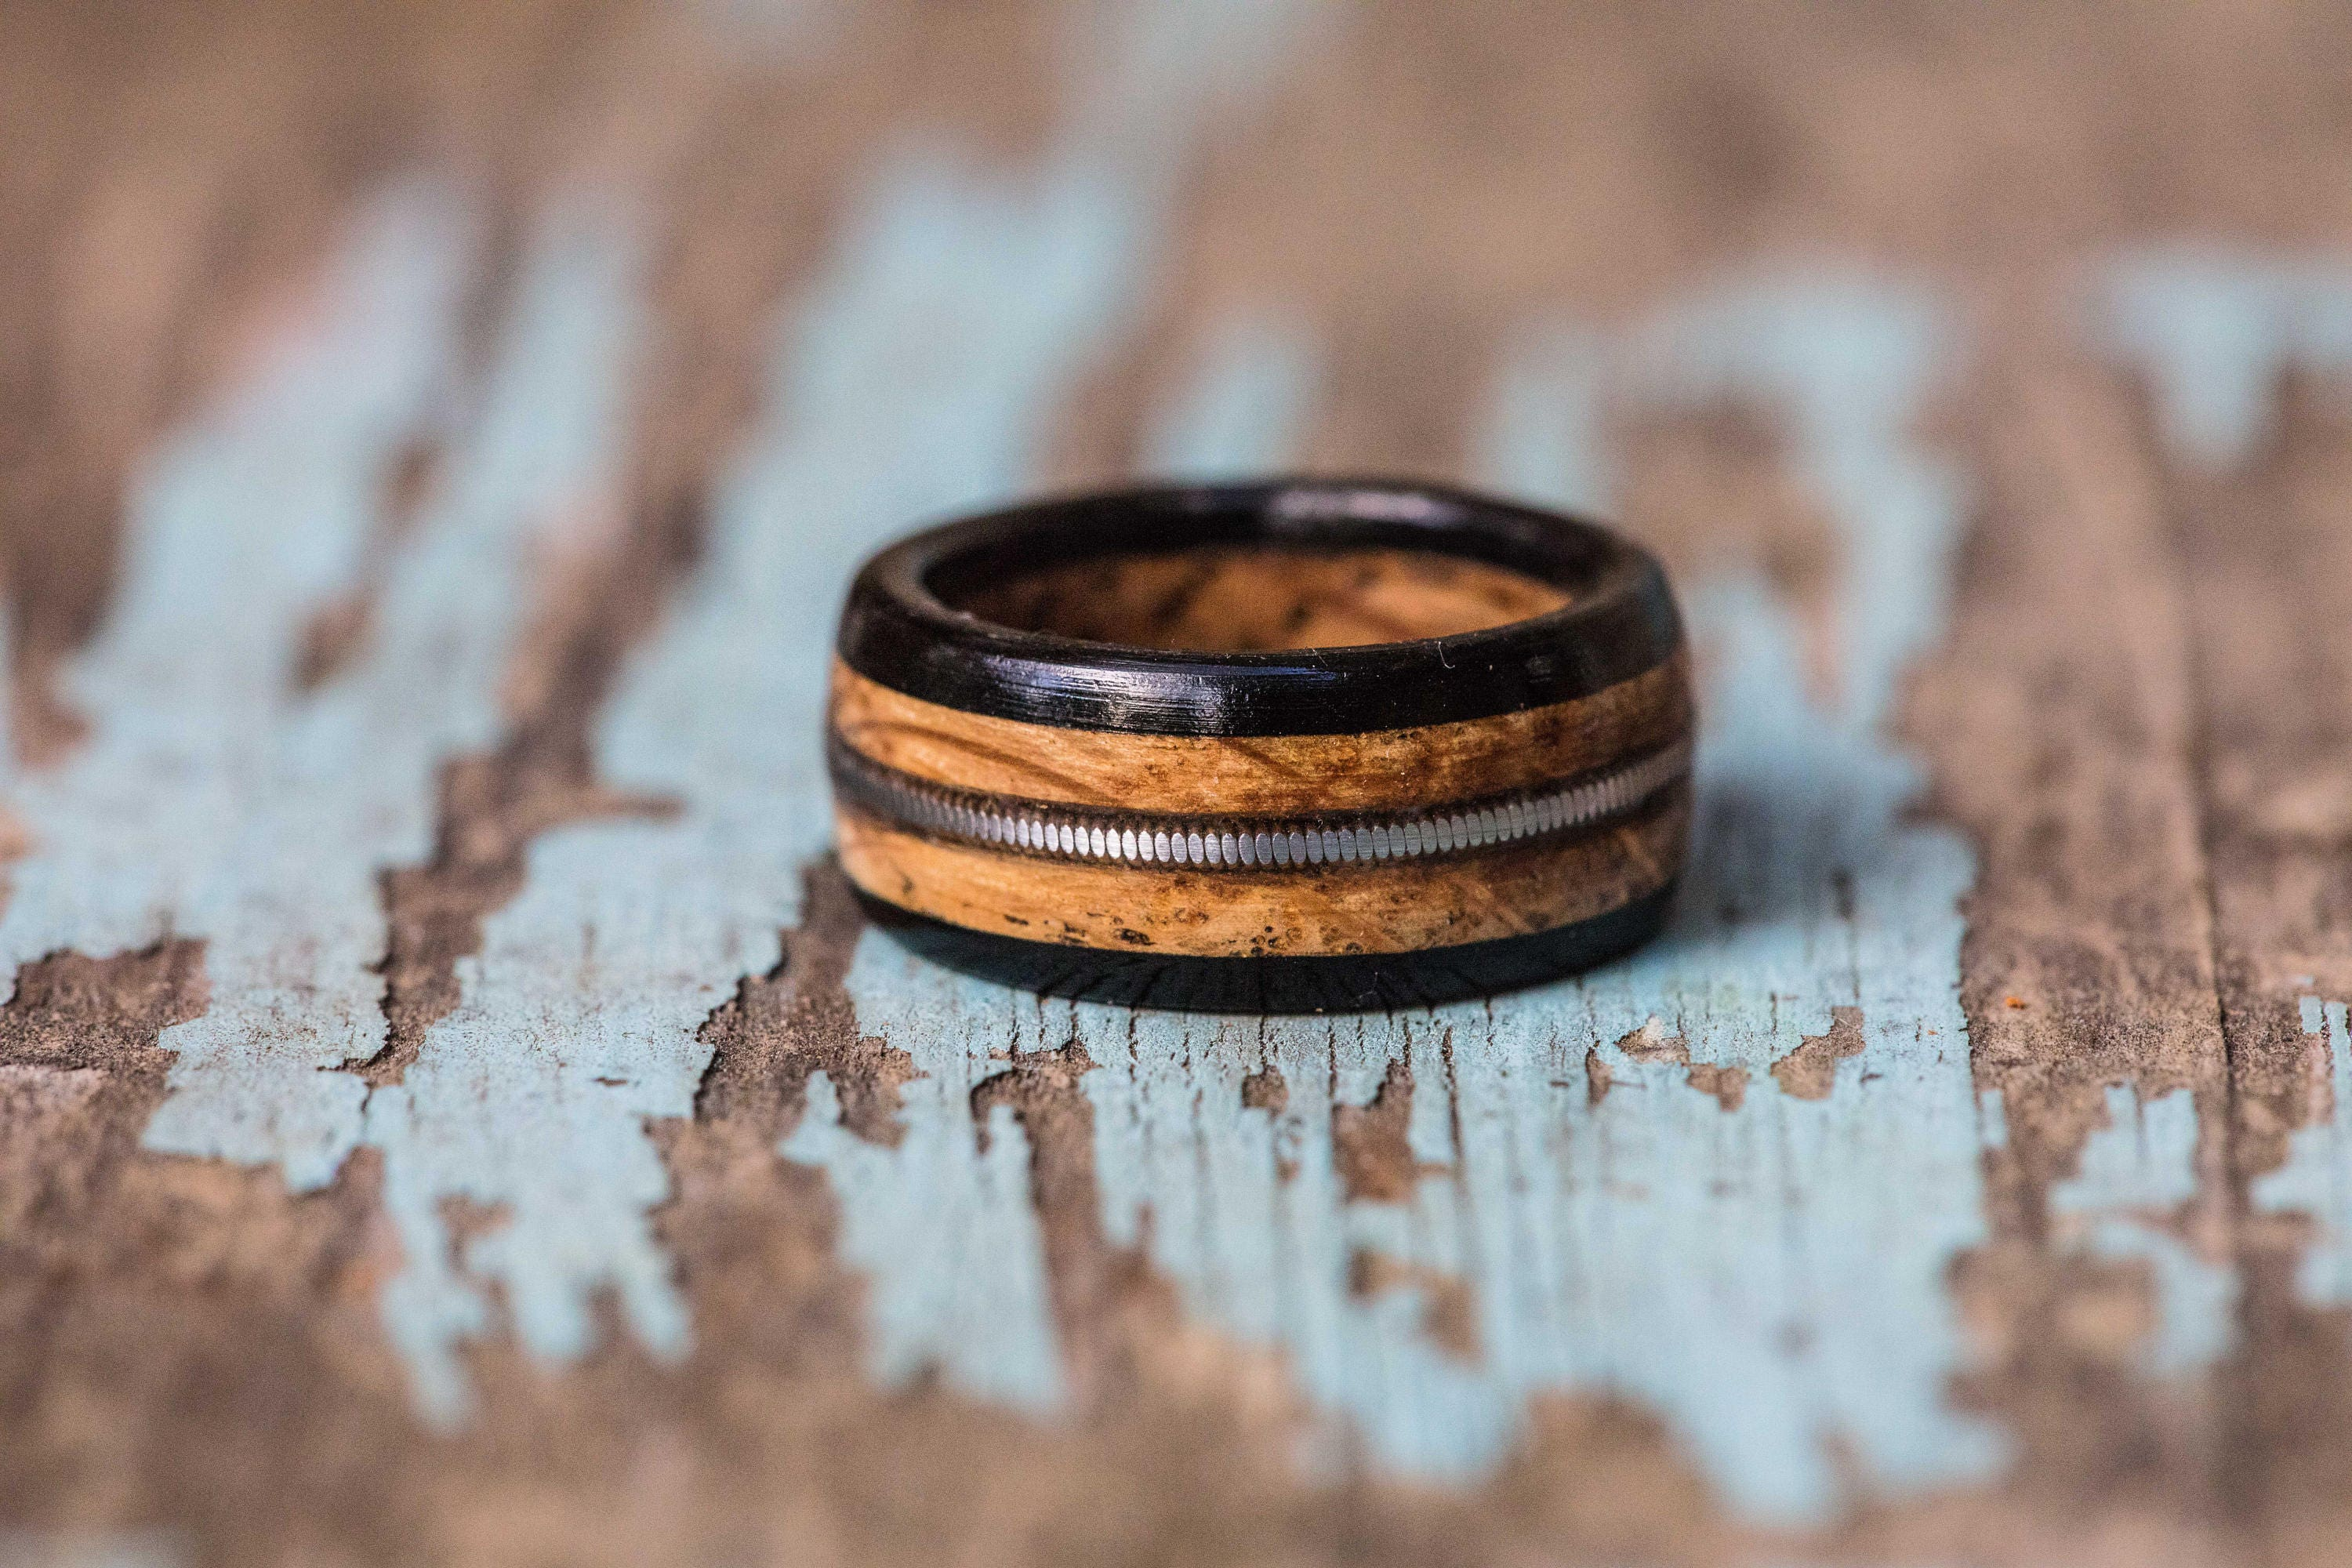 Tennessee Whiskey Barrel And Ebony Ring With Guitar String